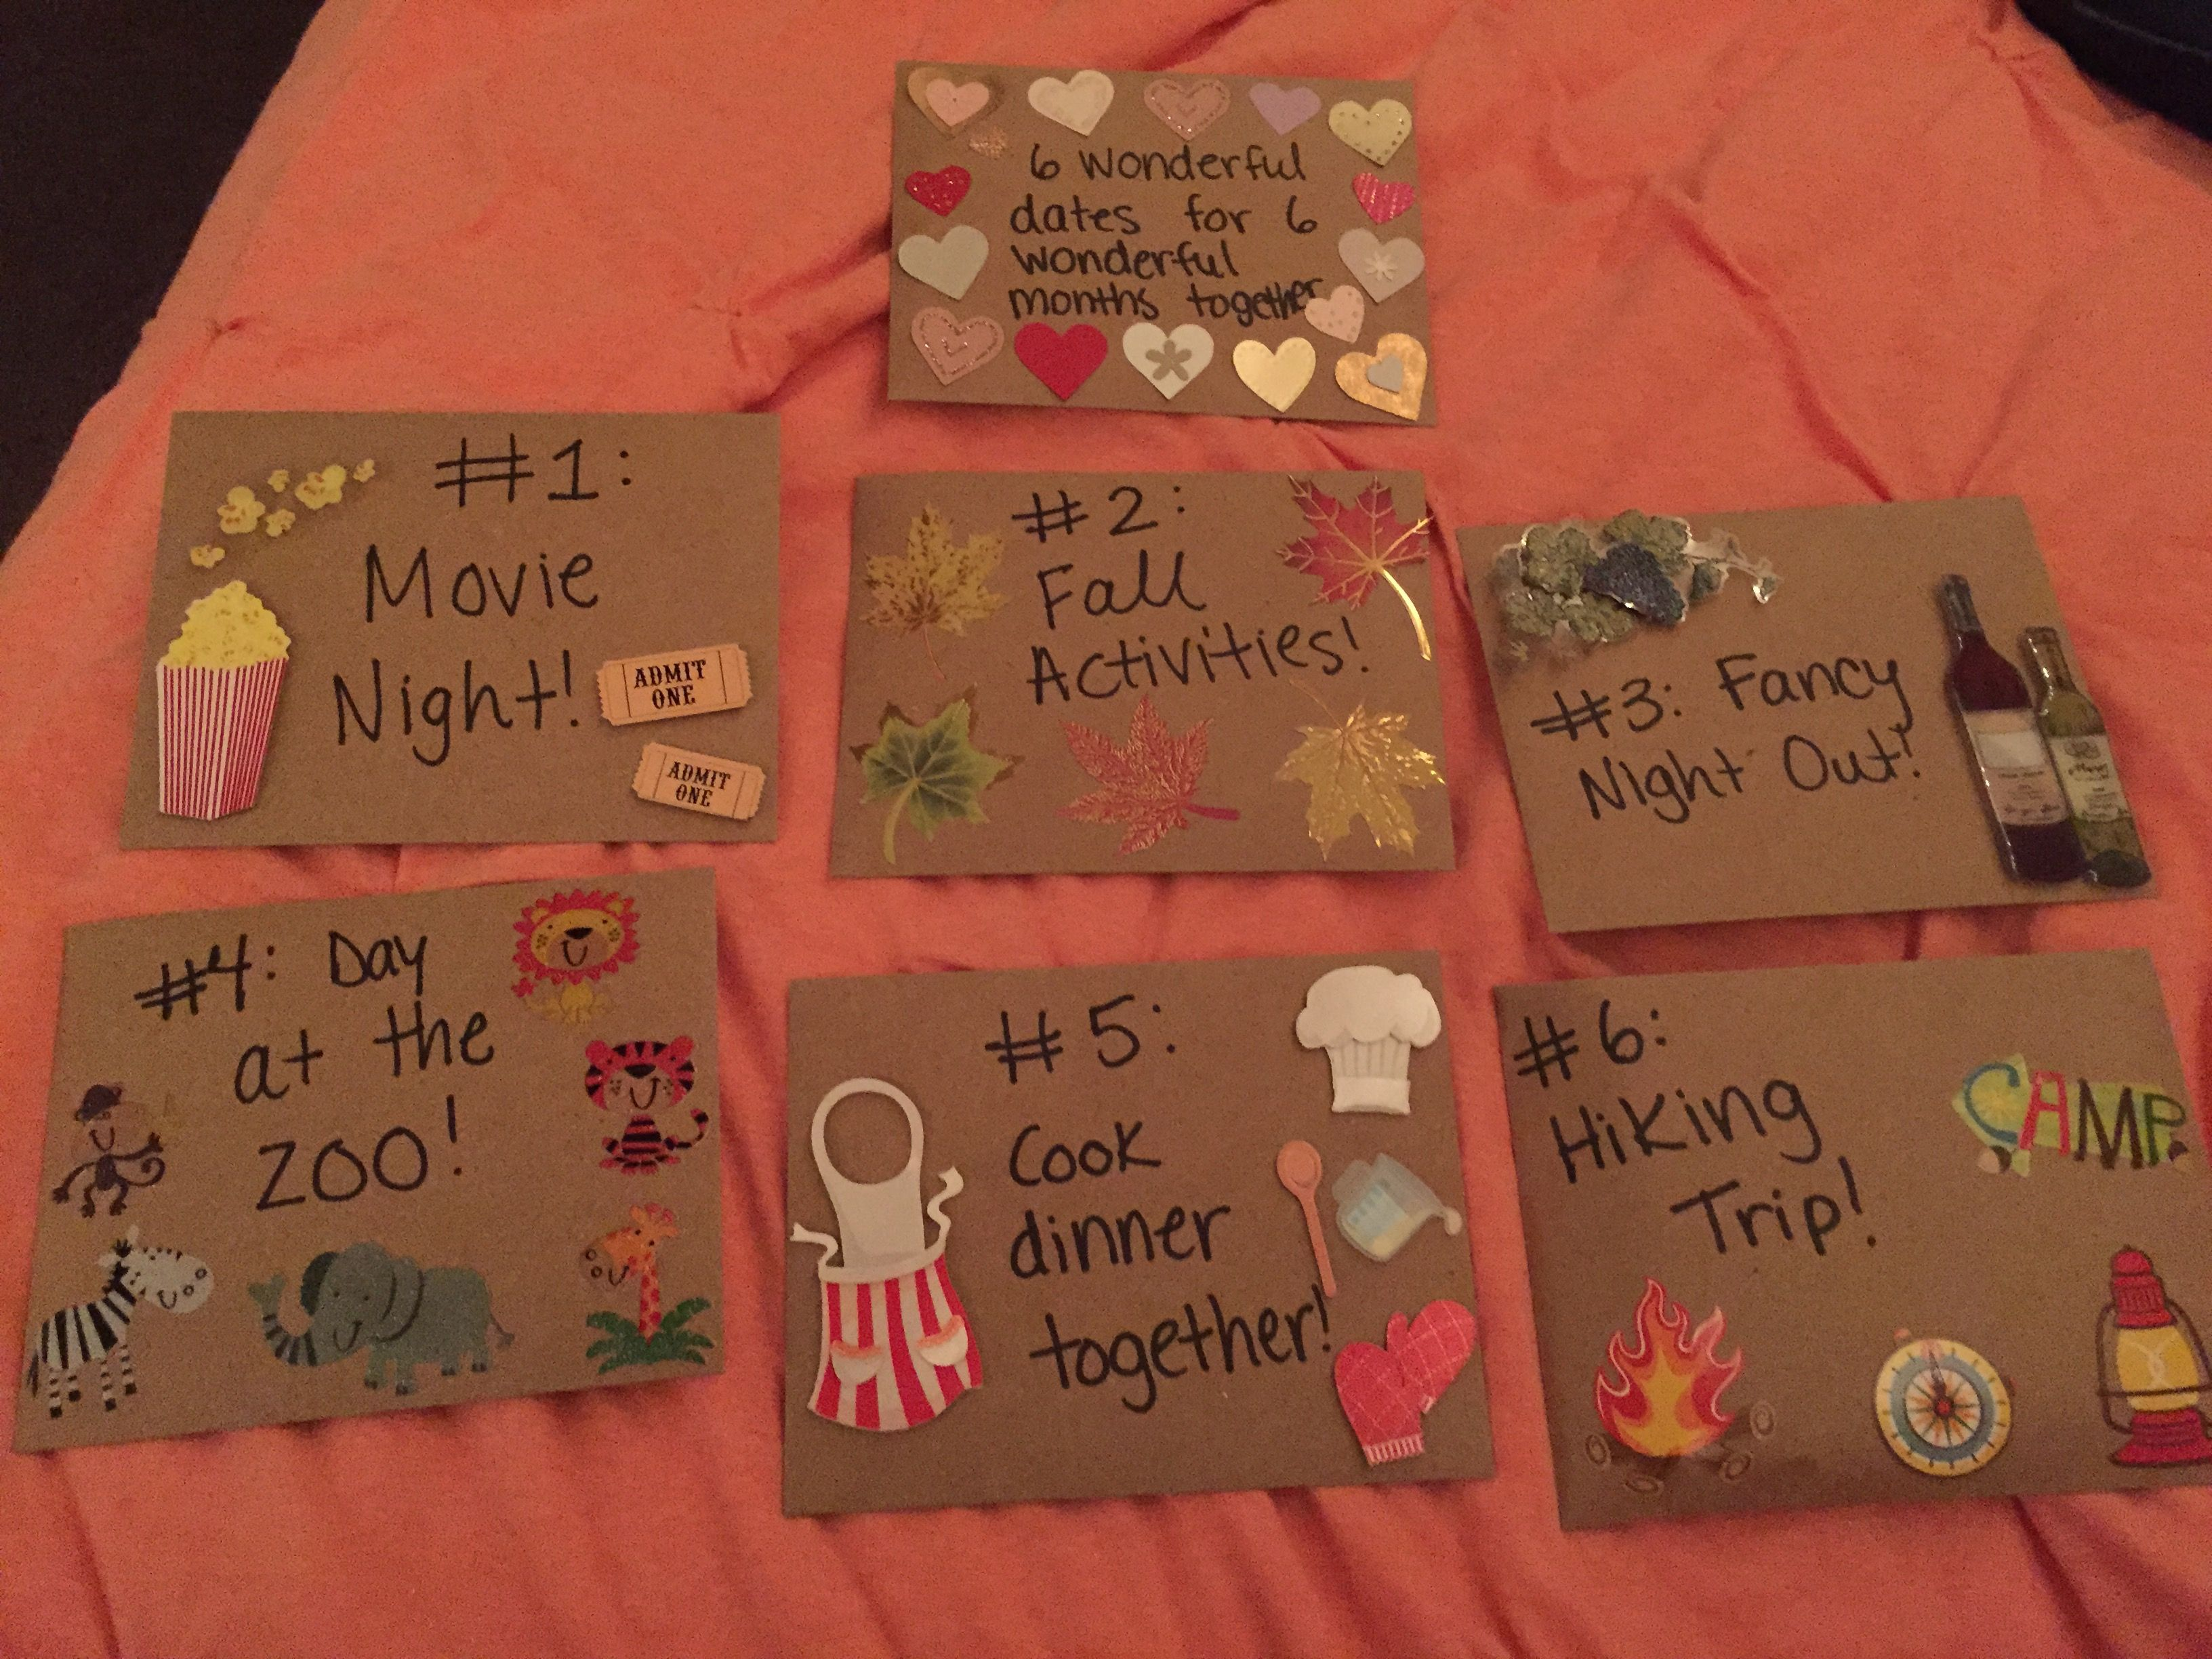 6 Month Anniversary Gift For My Boyfriend 6 Dates For 6